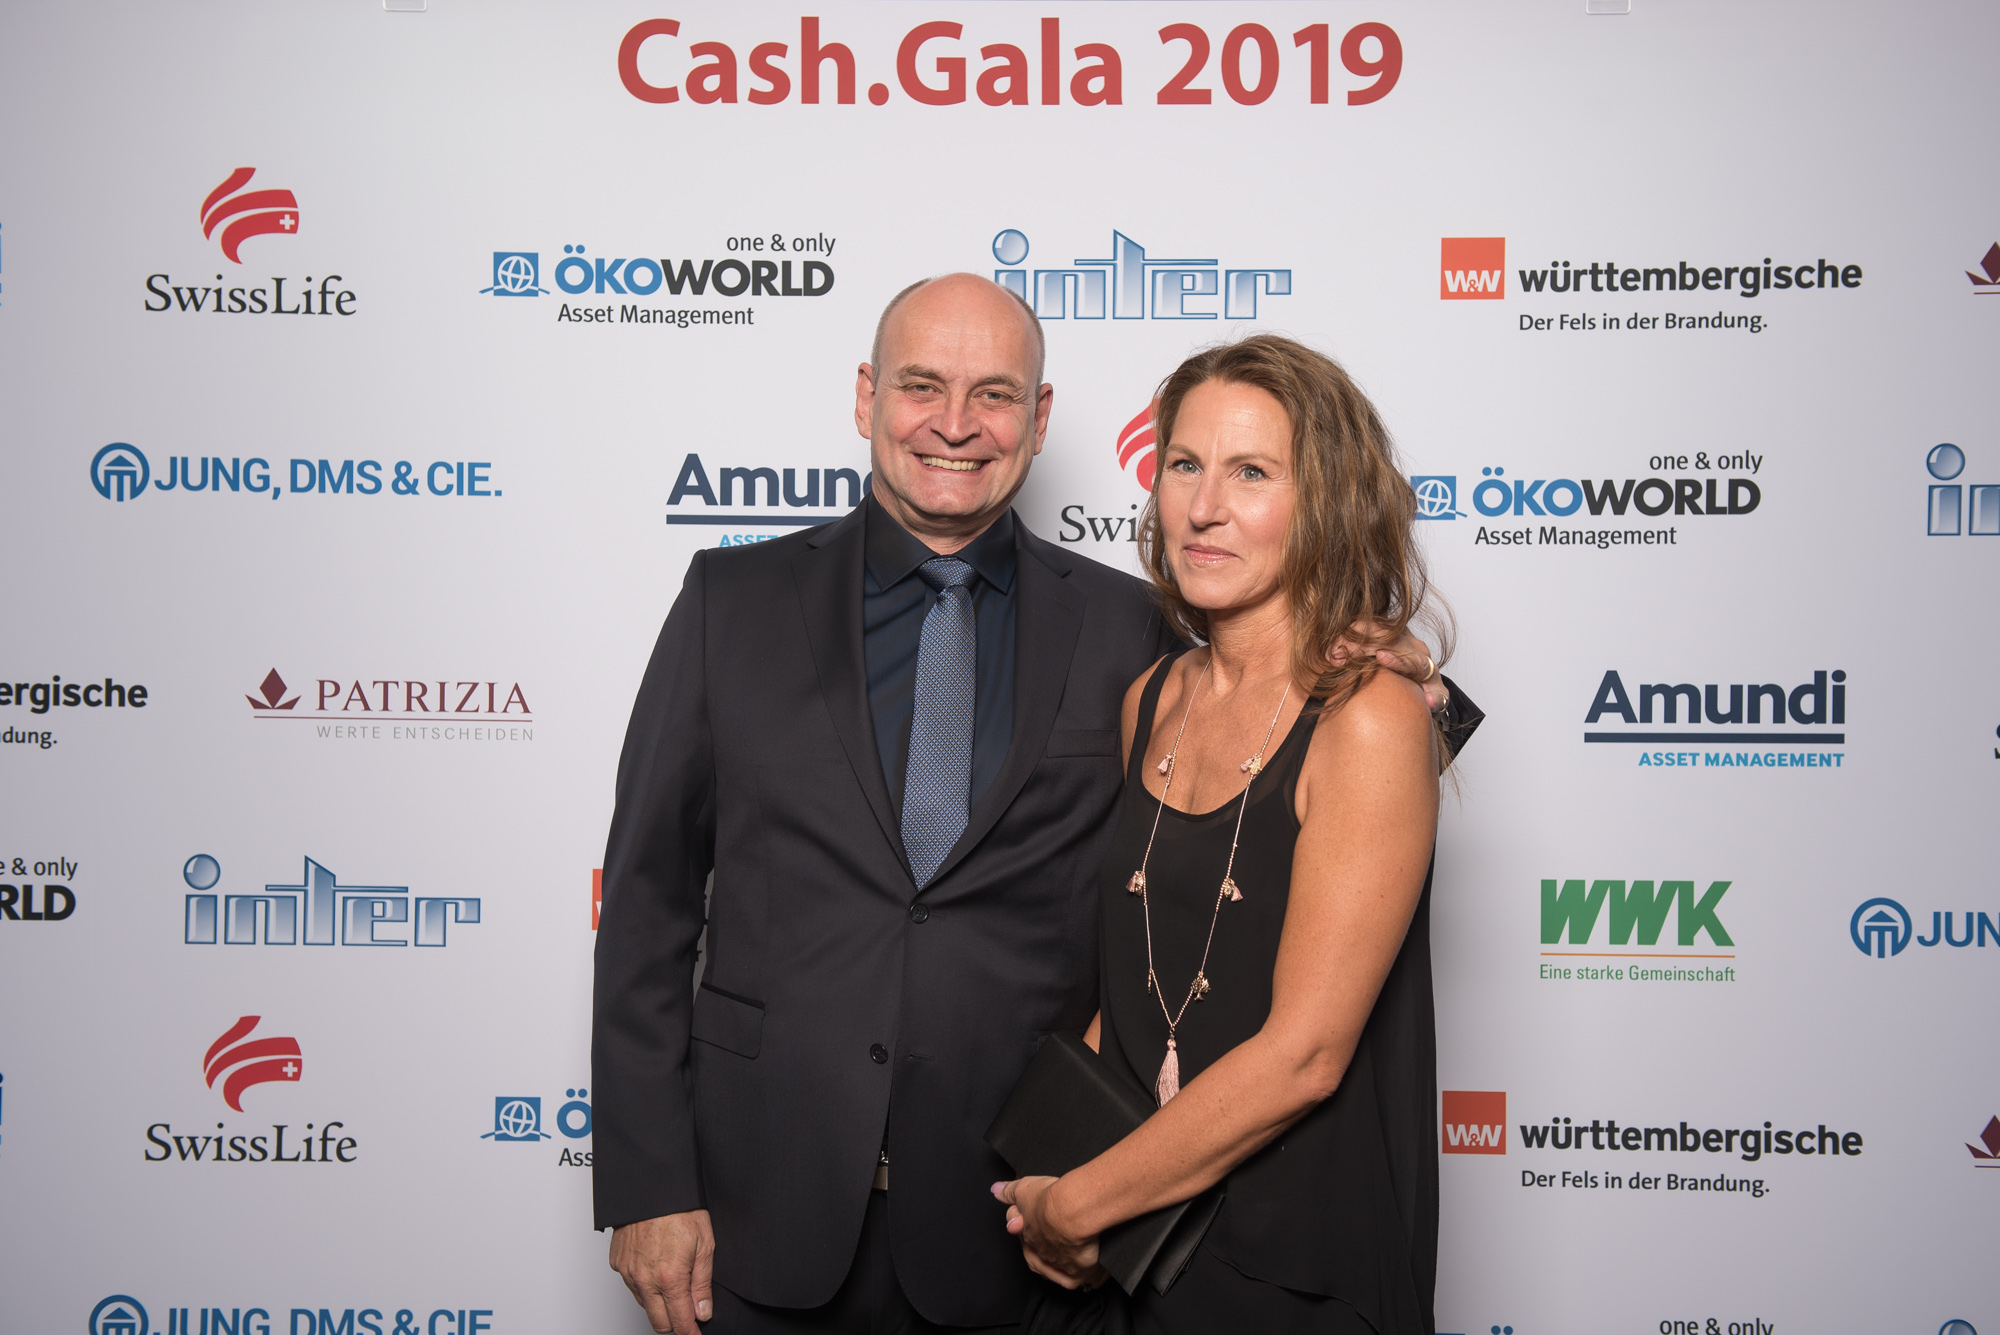 CashGala 2019 0059 AM DSC7119 in Cash.Gala 2019